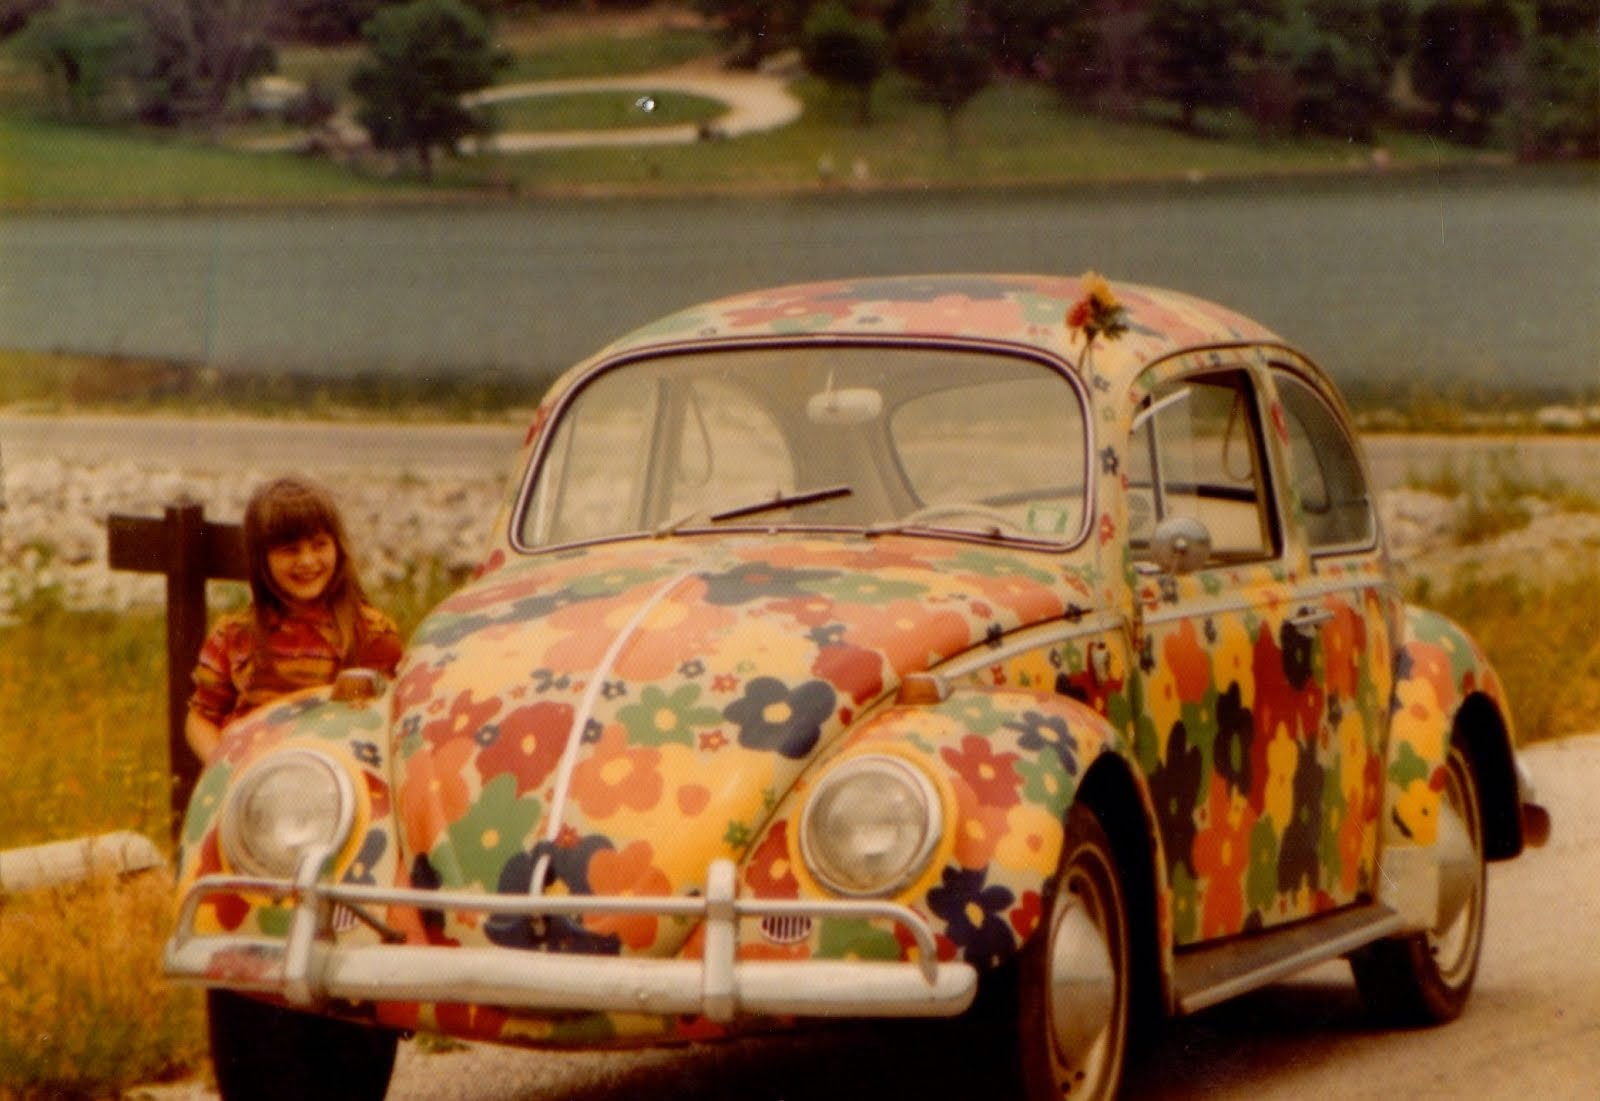 The VW Bug